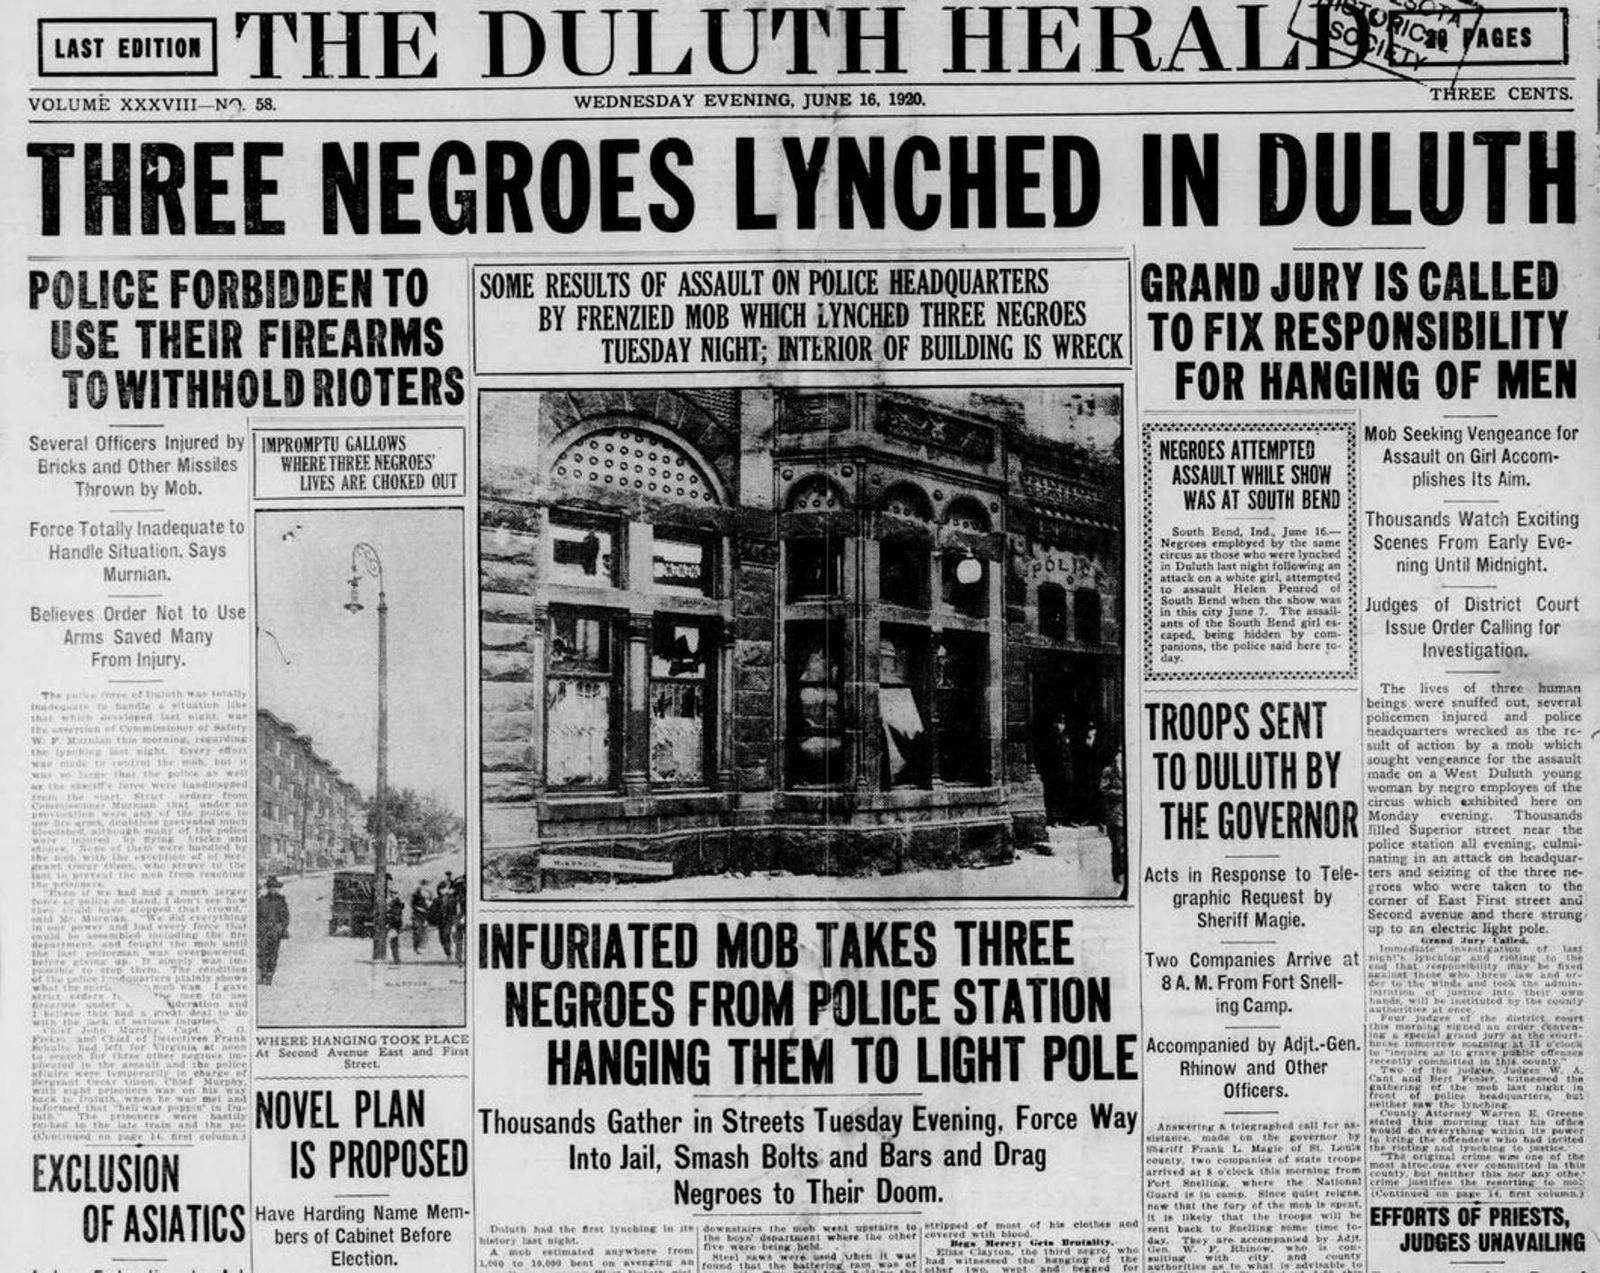 The Duluth Herald reported the horrors of a June 15, 1920 lynching of three black men ...